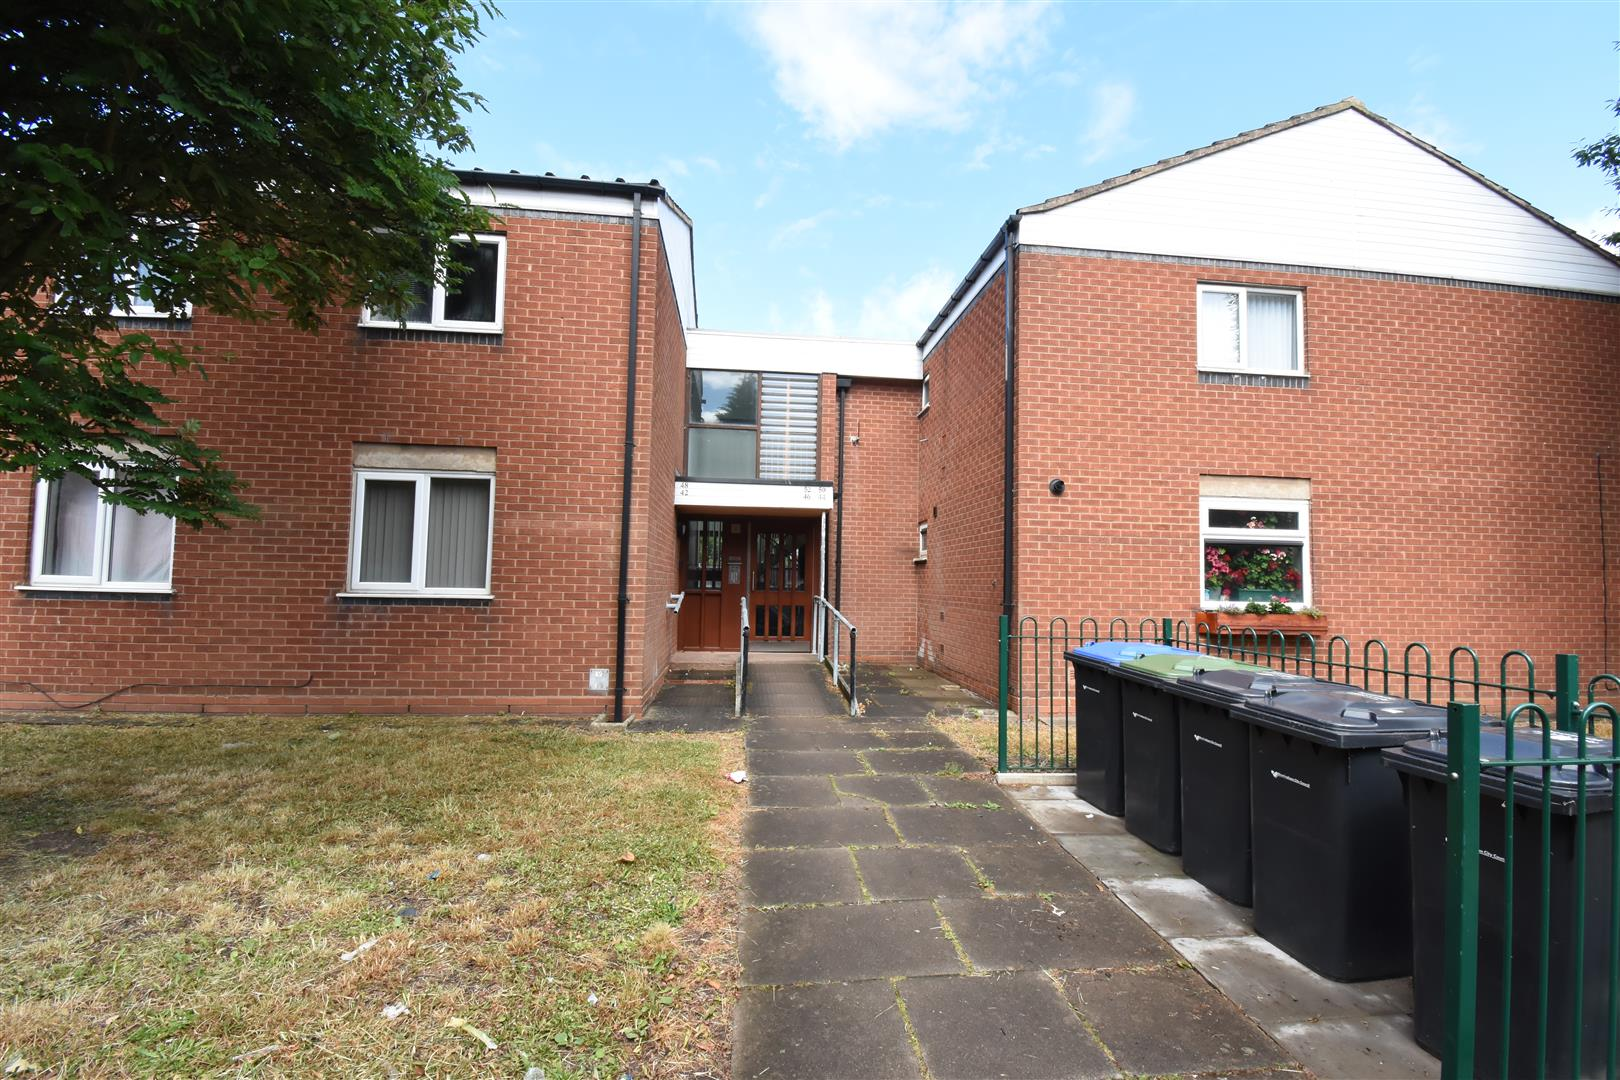 2 bed flat for sale in Kestrel Avenue, Yardley, Birmingham, B25